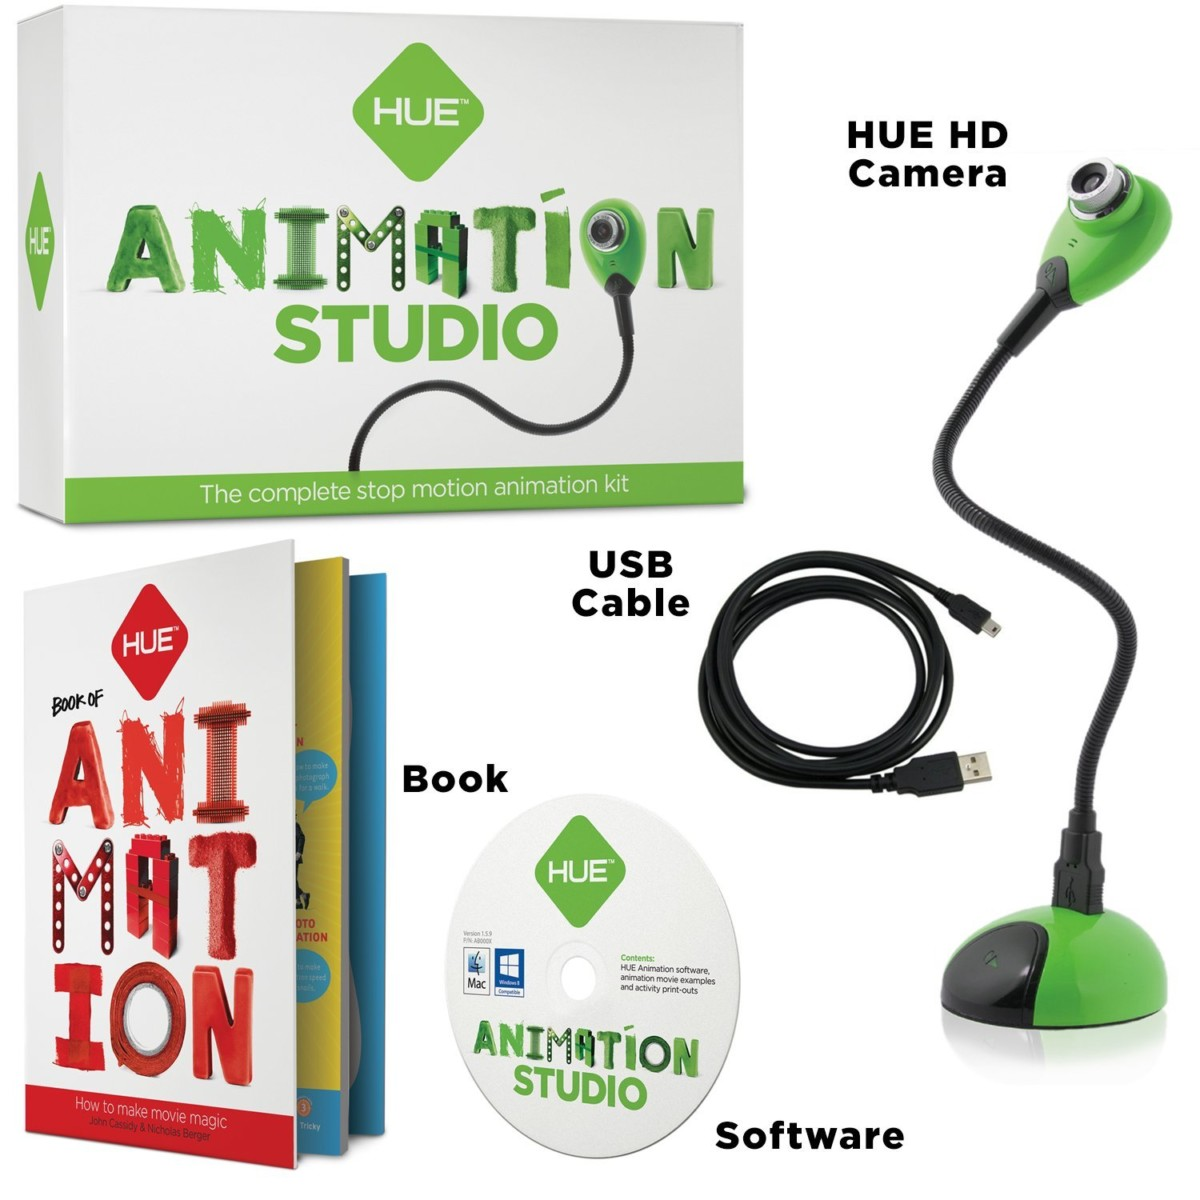 Hue Animation Studio product image